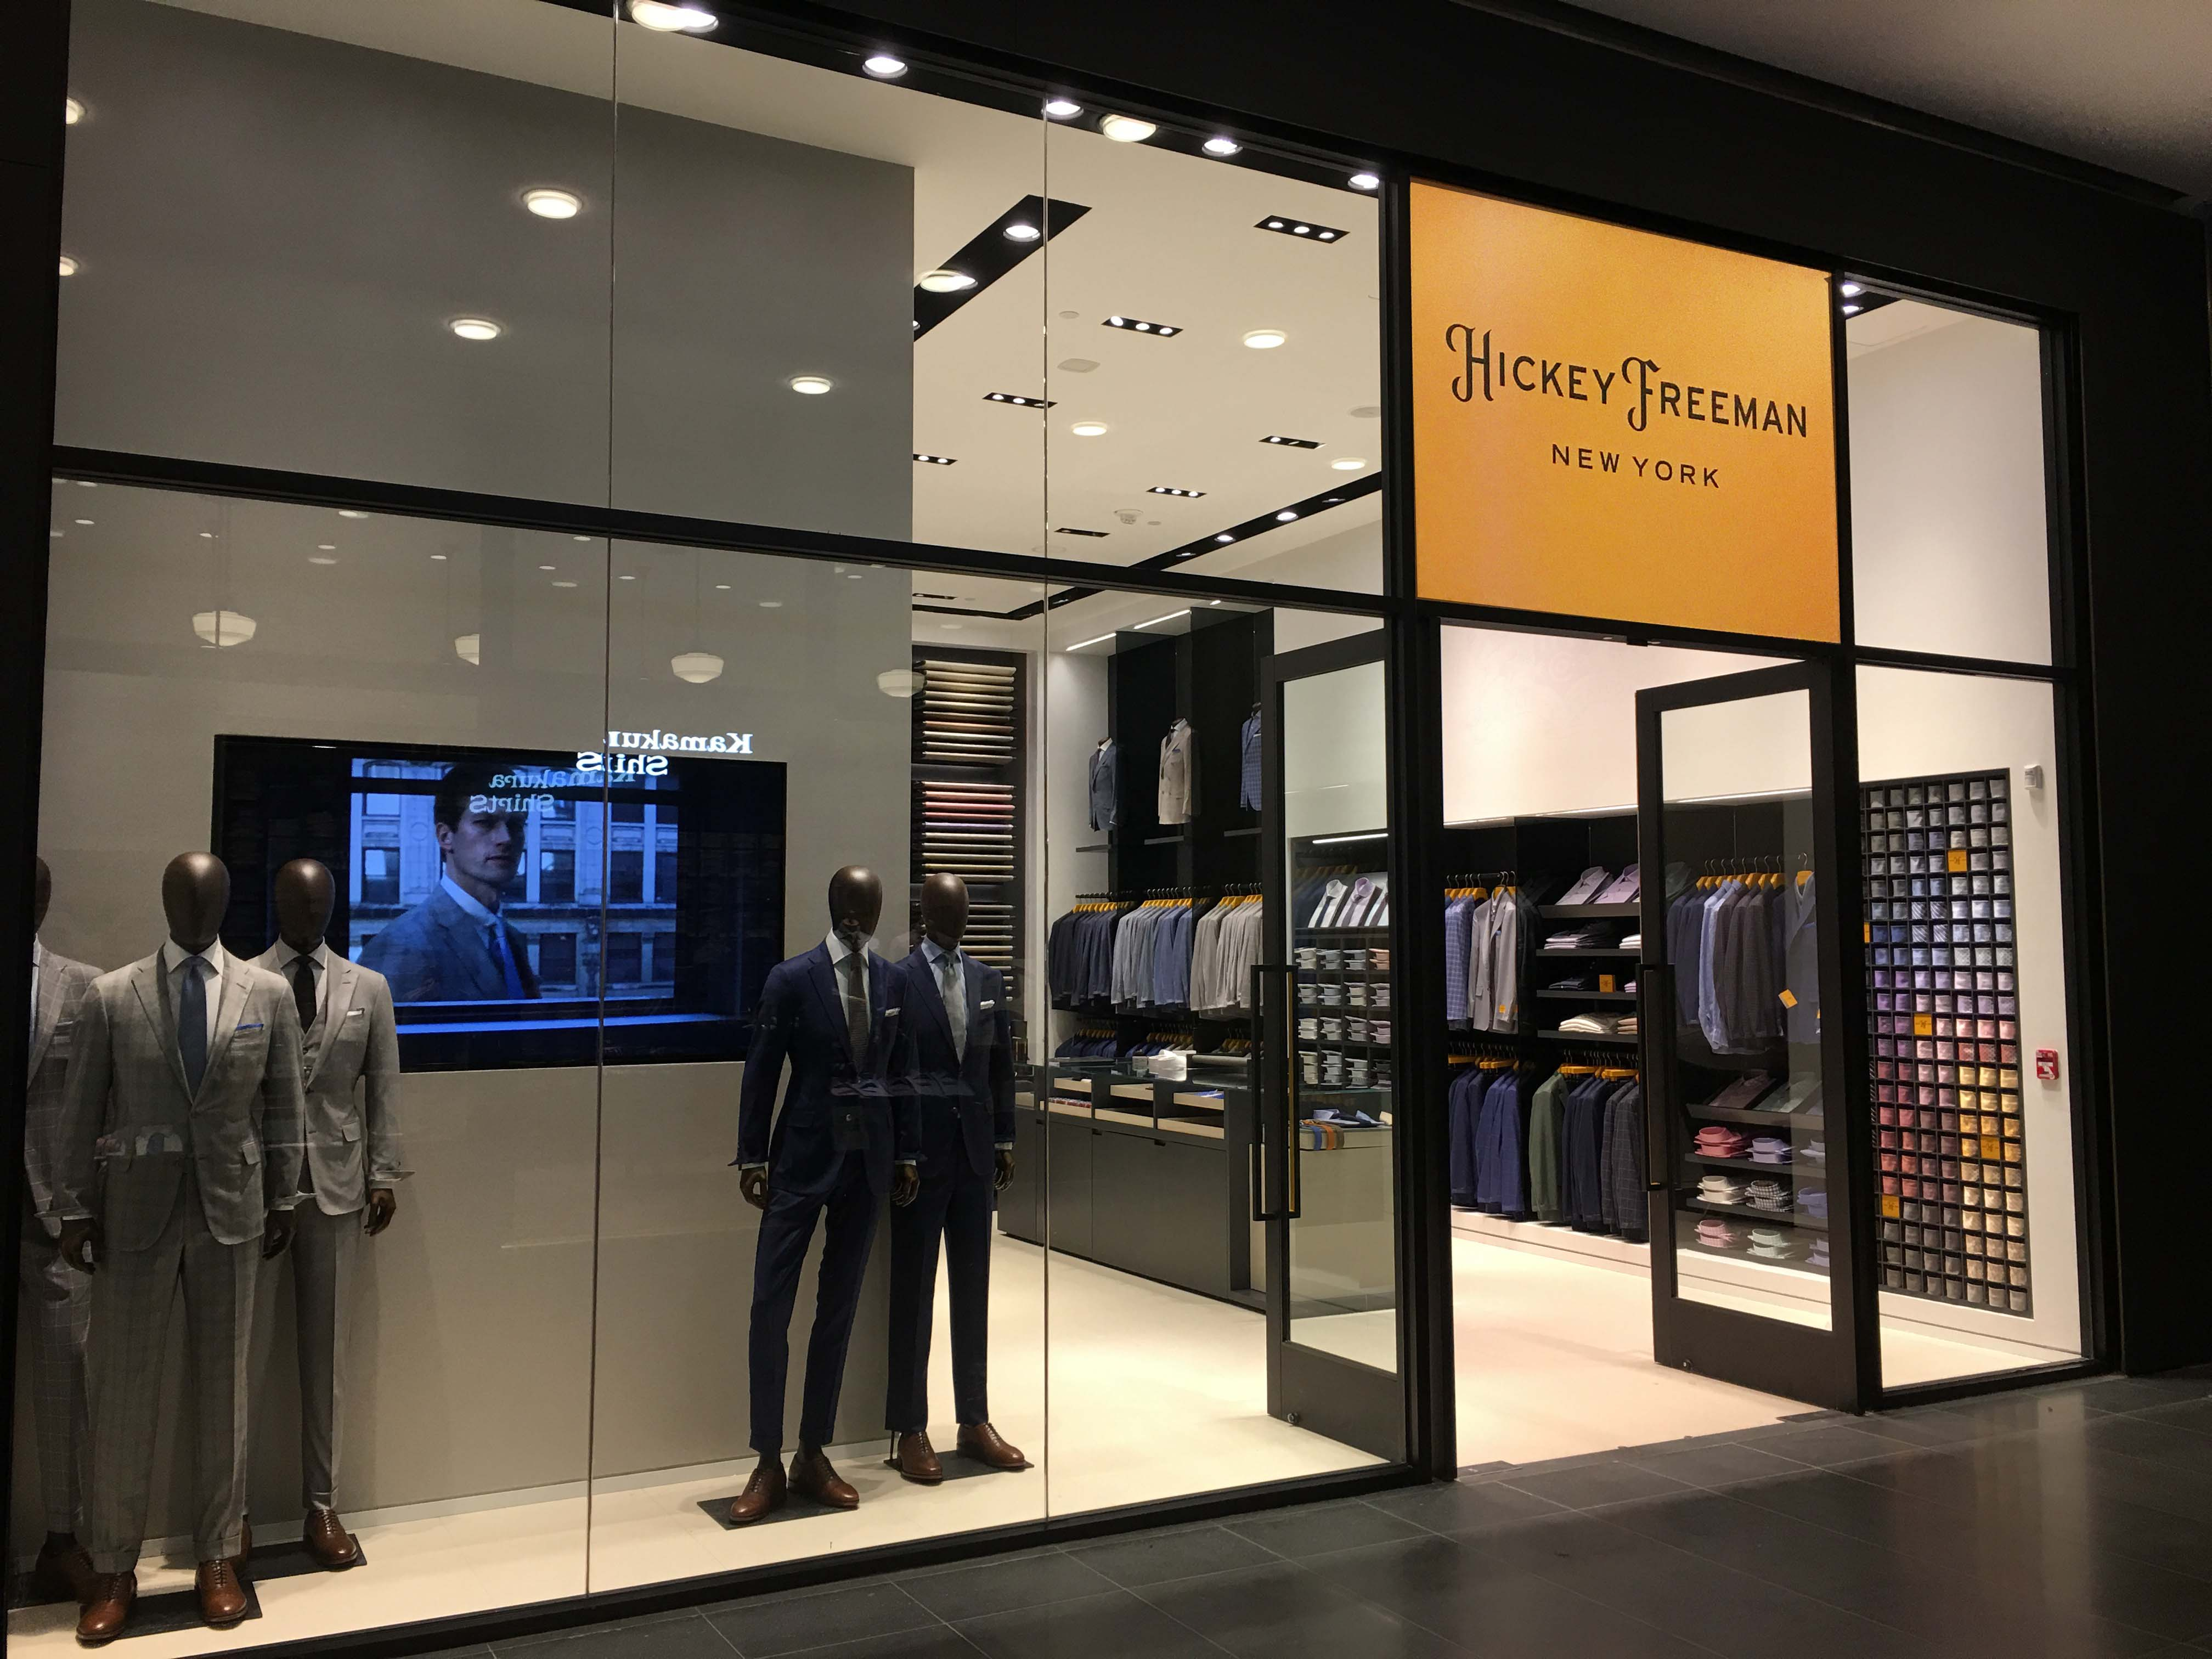 hickey freeman suit shop opens in brookfield place batterypark